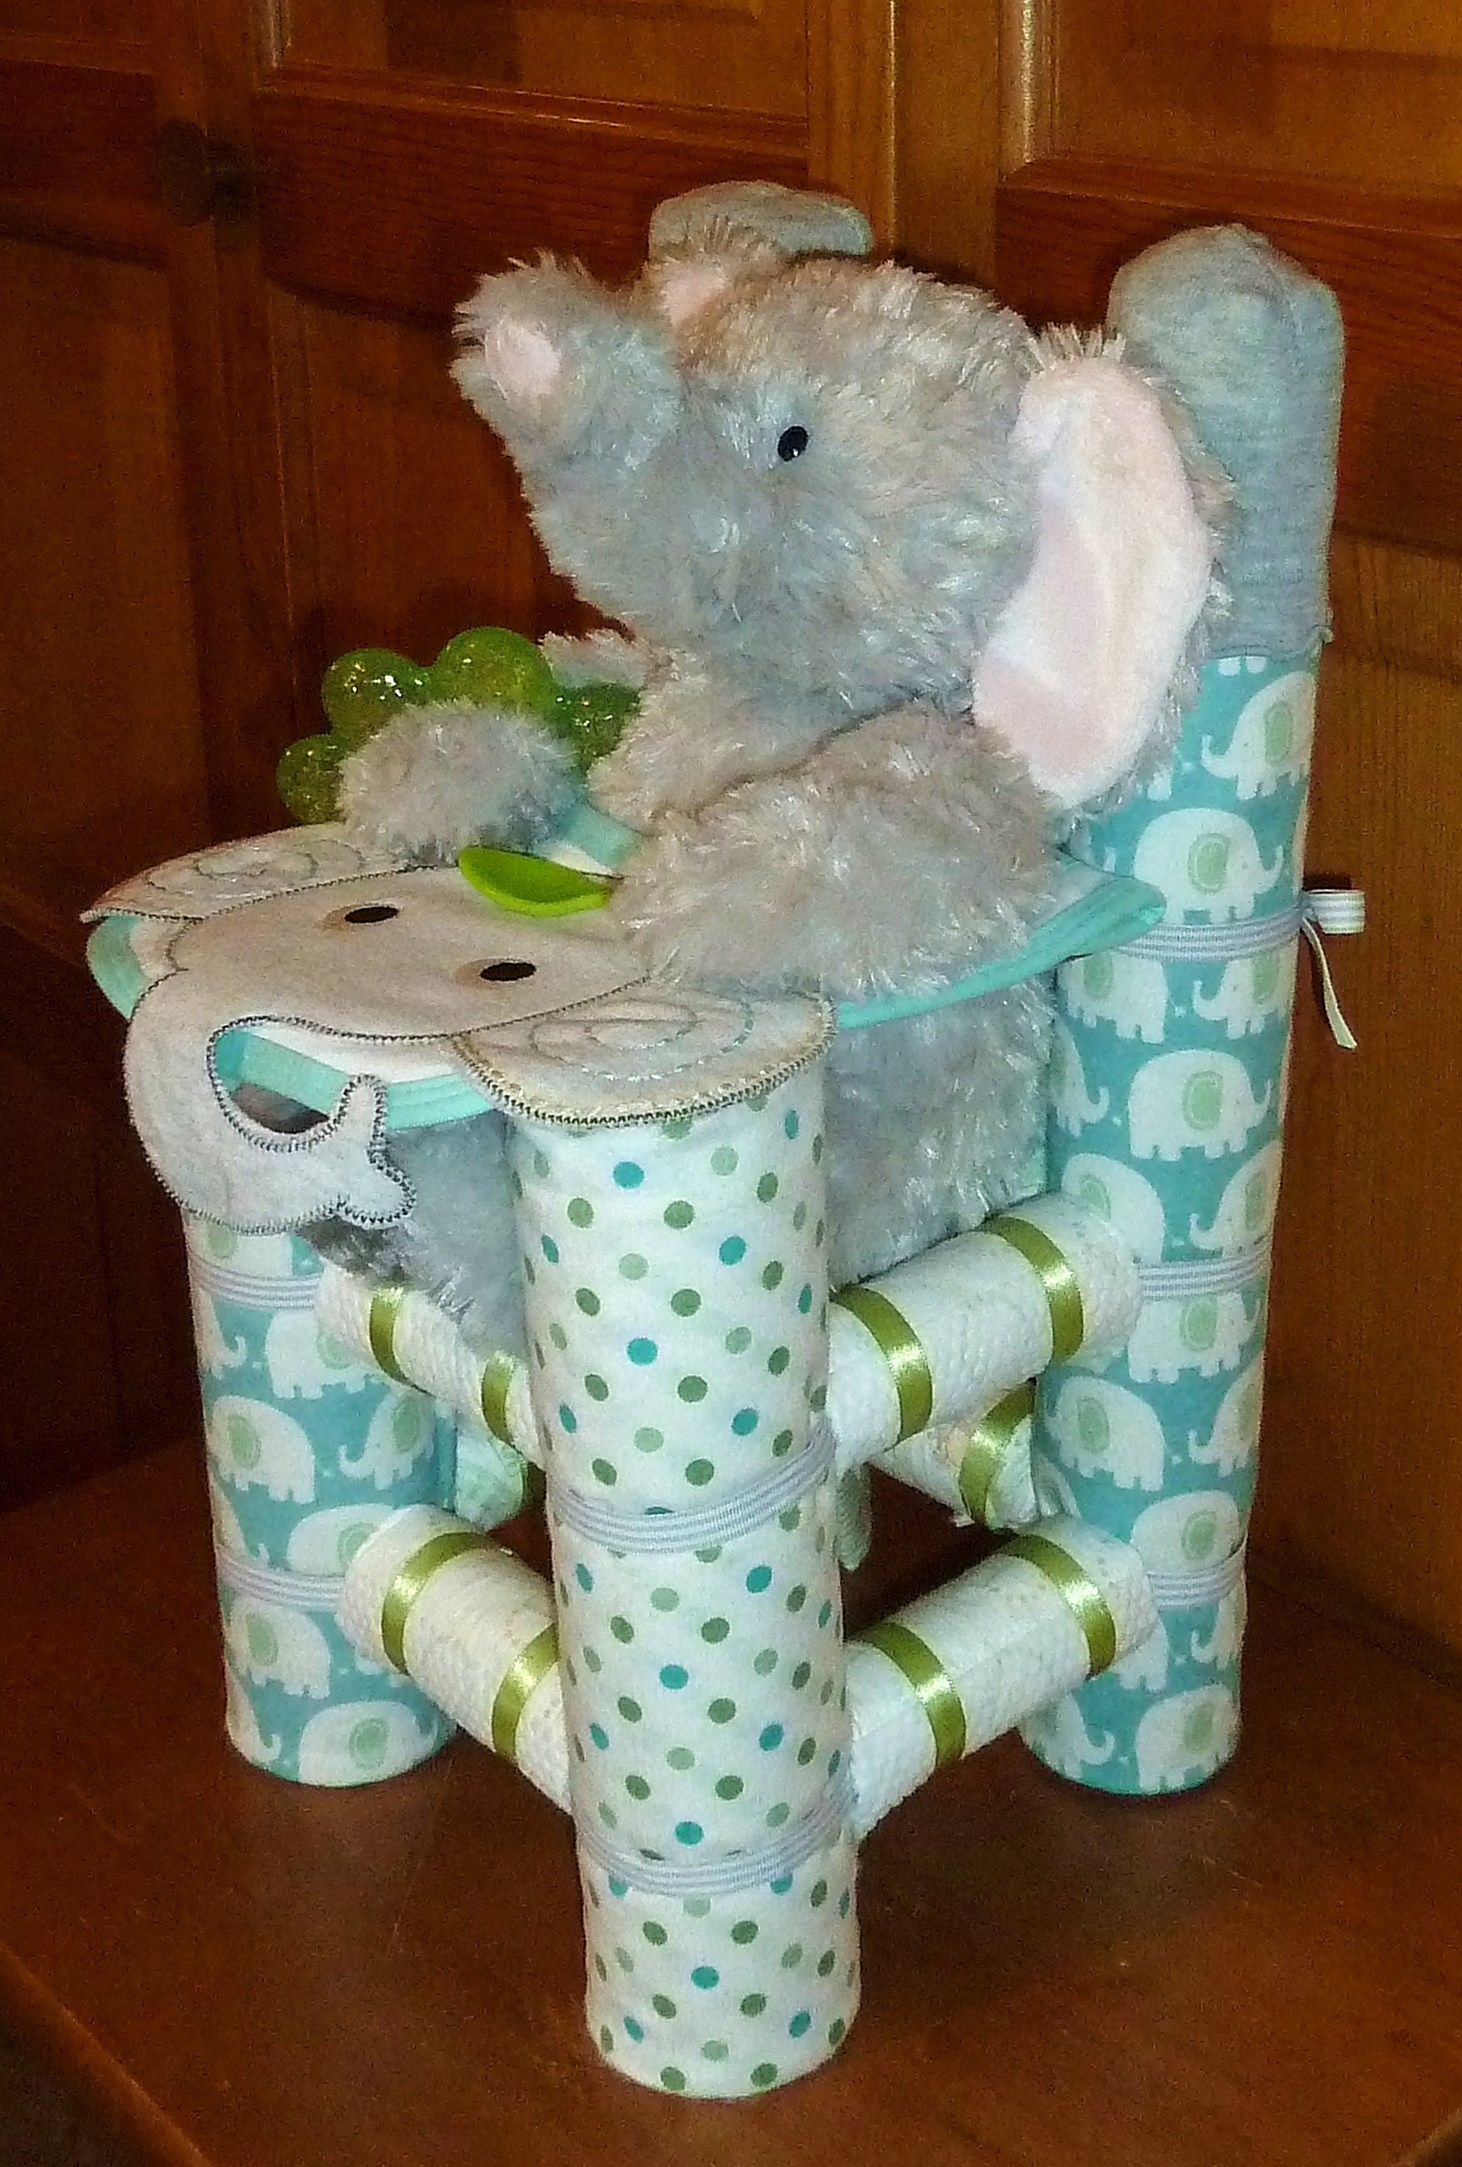 Elephant High Chair La Z Boy Executive 2 Diaper Www Etsy Com Shop Creationsbydawne Baby